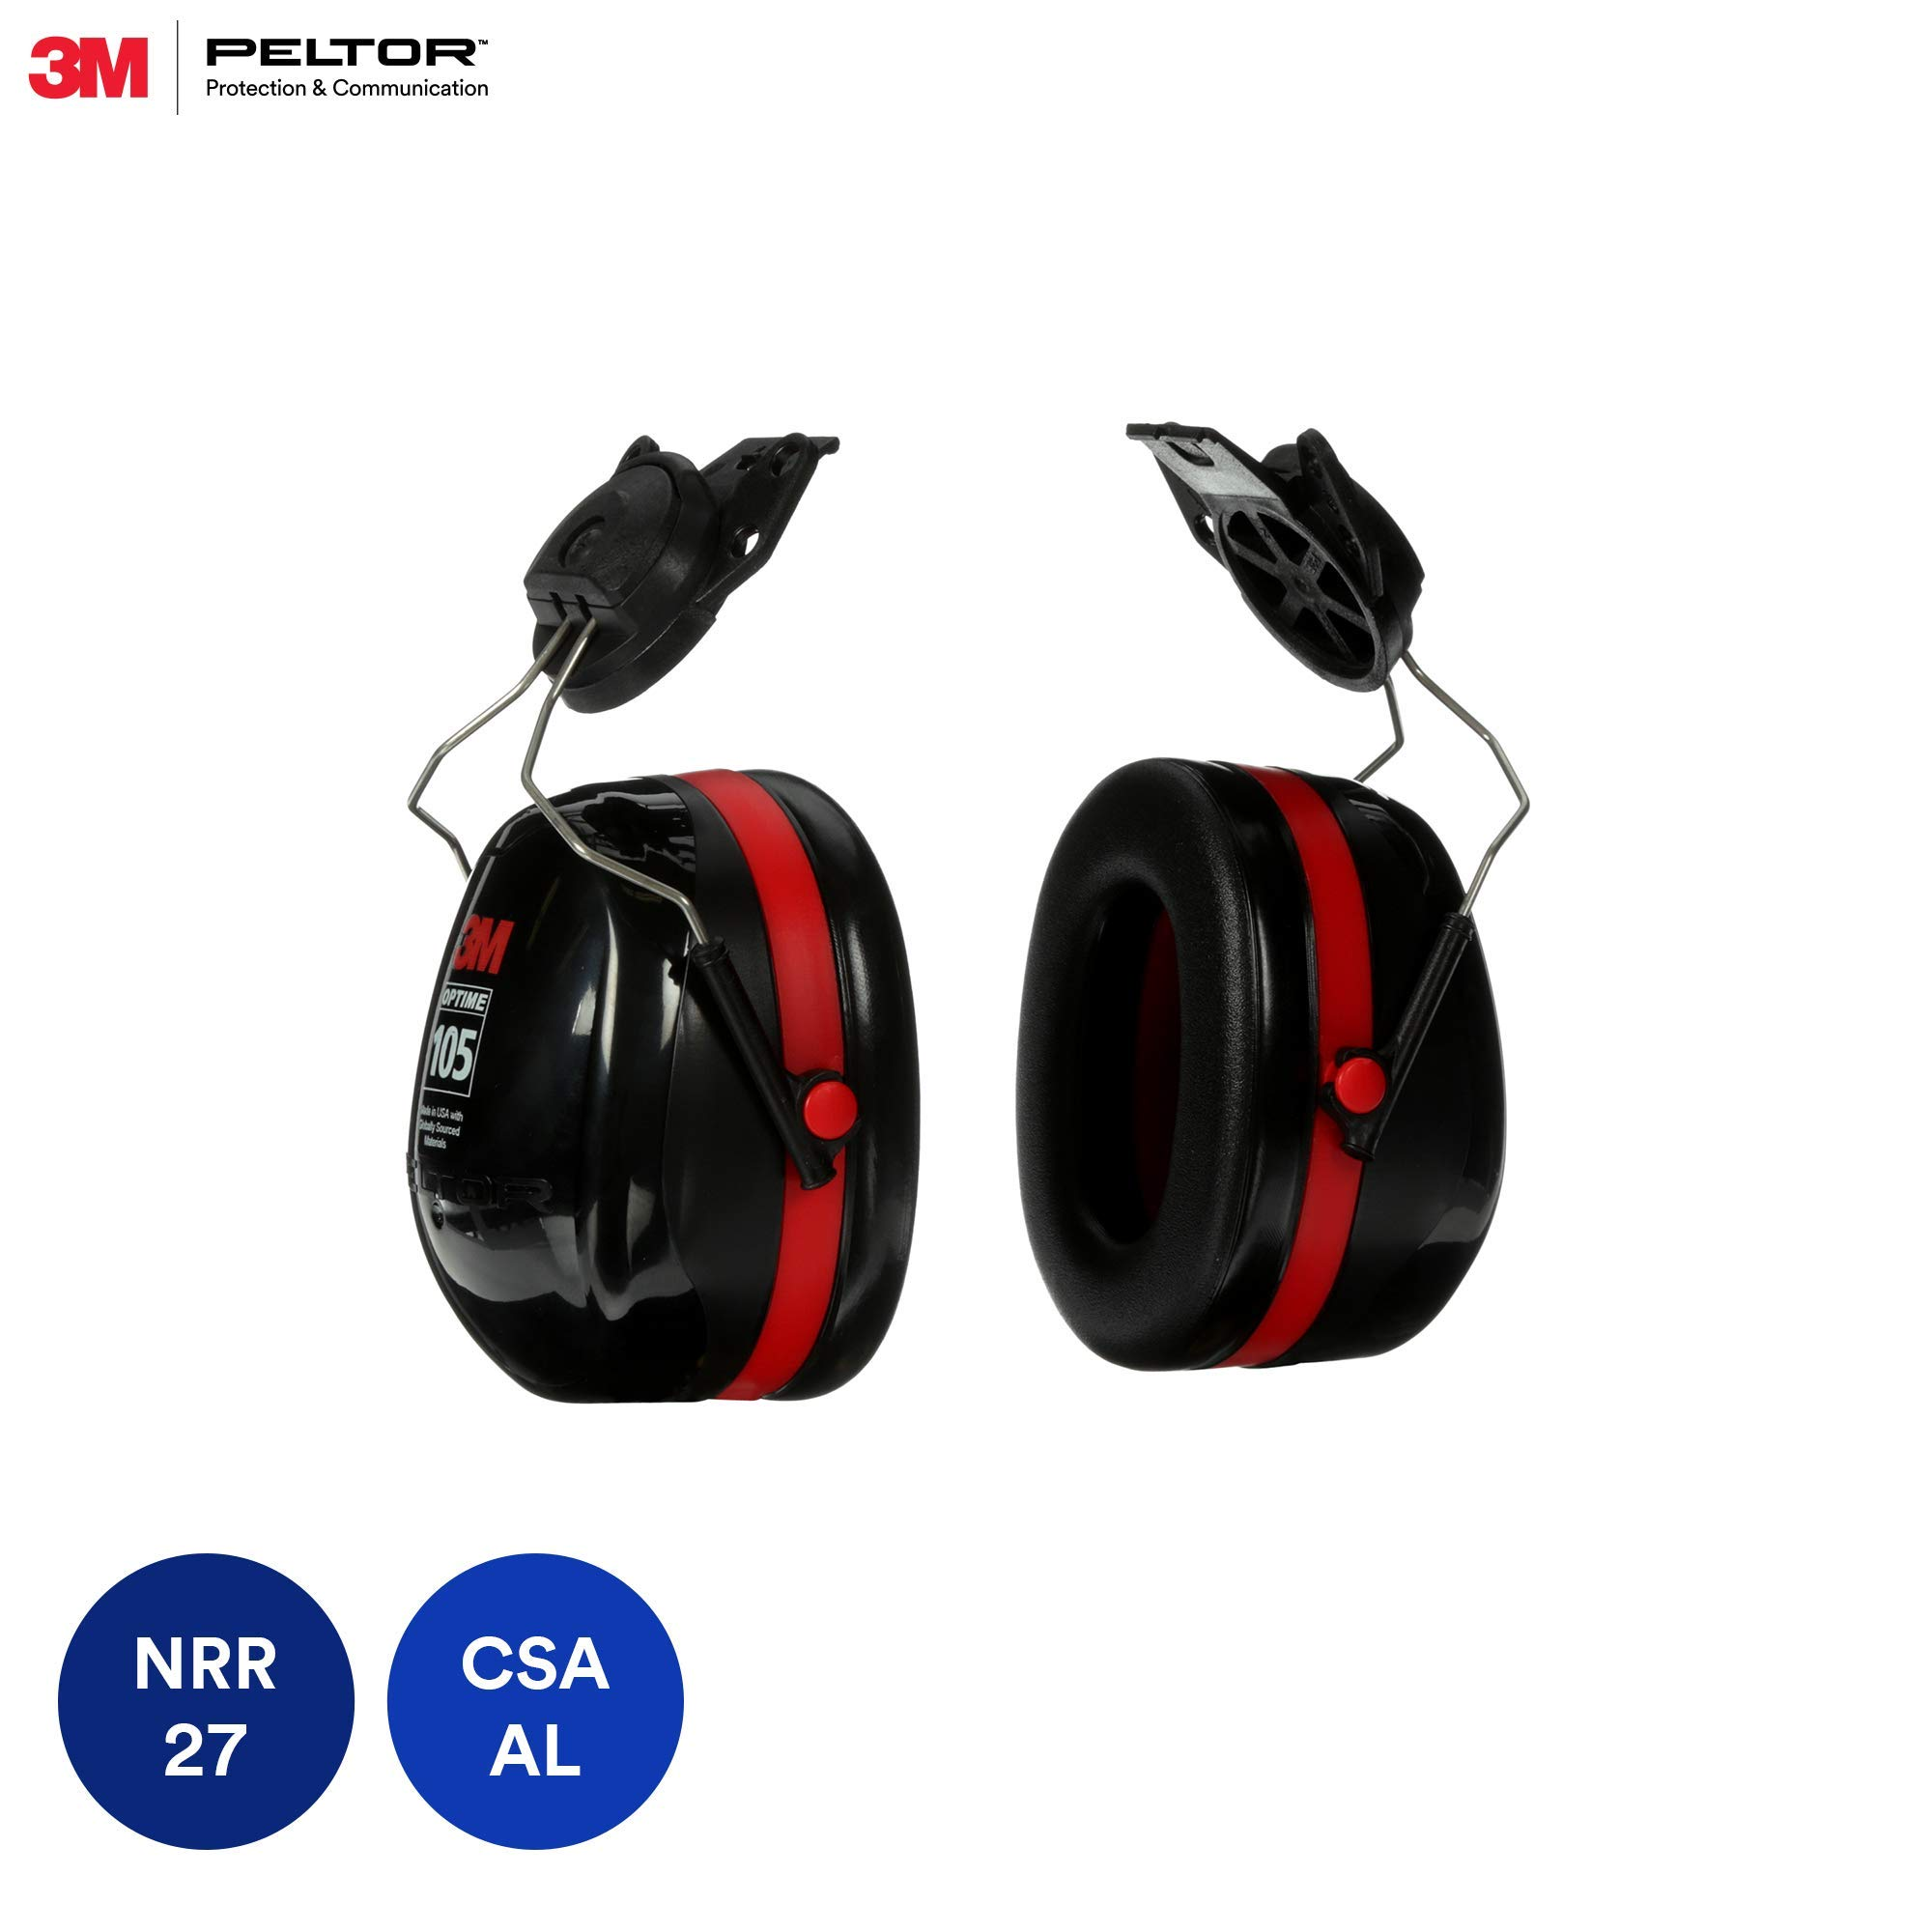 3M Peltor Optime 105 Cap-Mount Earmuffs, Hearing Conservation H10P3E